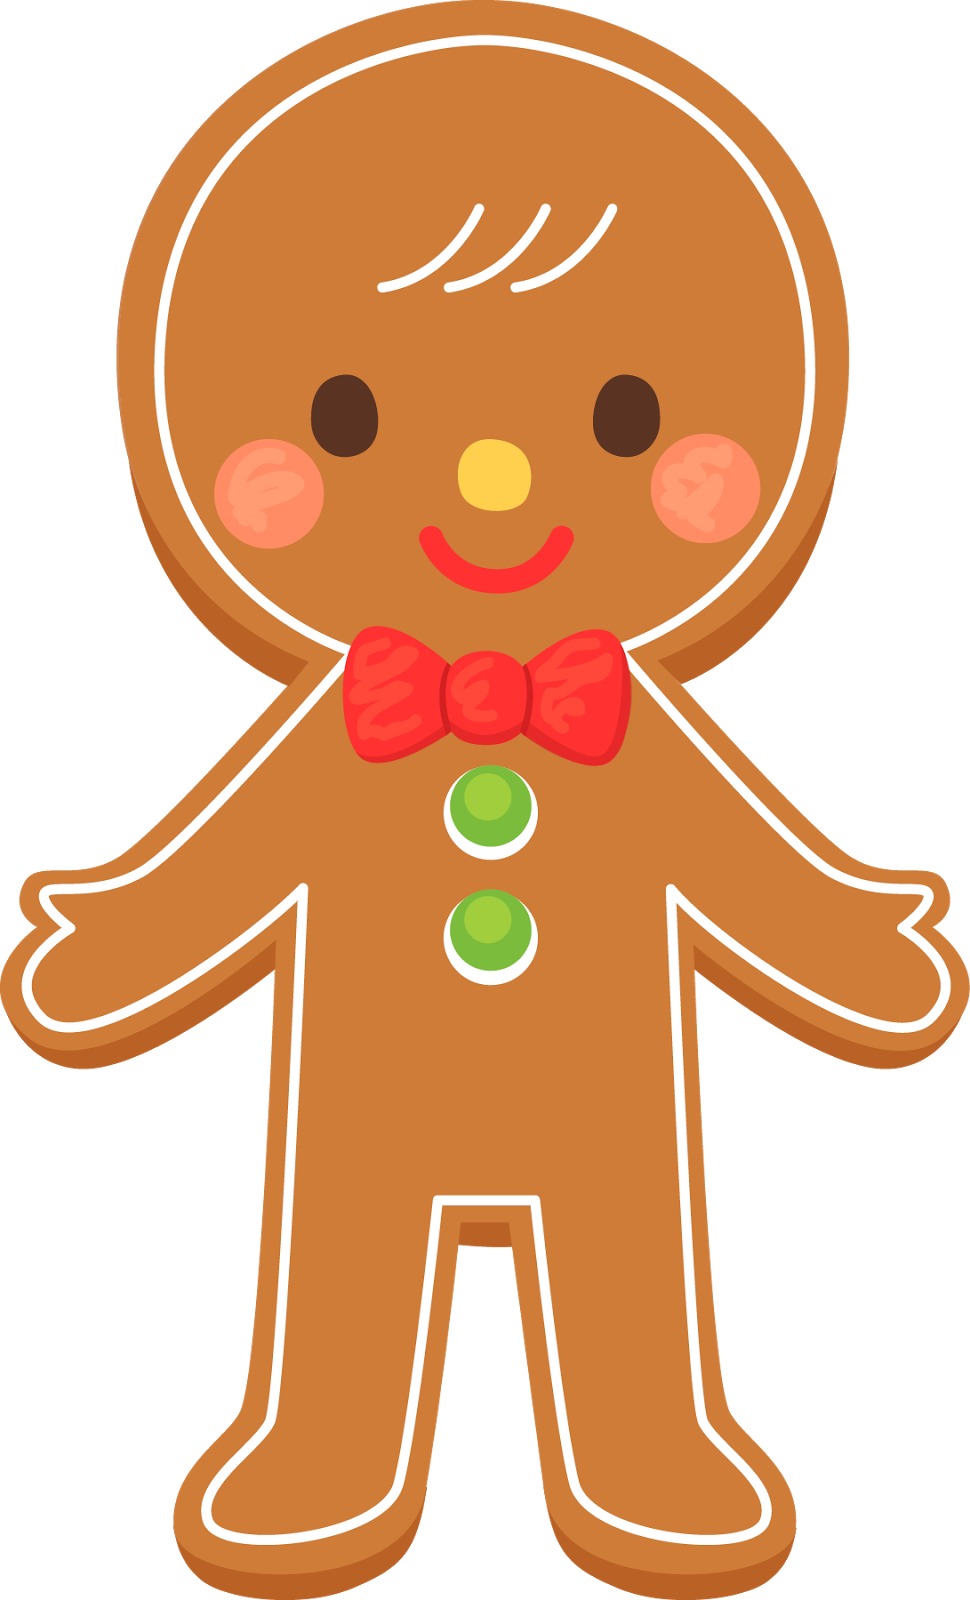 Faces clipart smart boy. Free gingerbread man cliparts